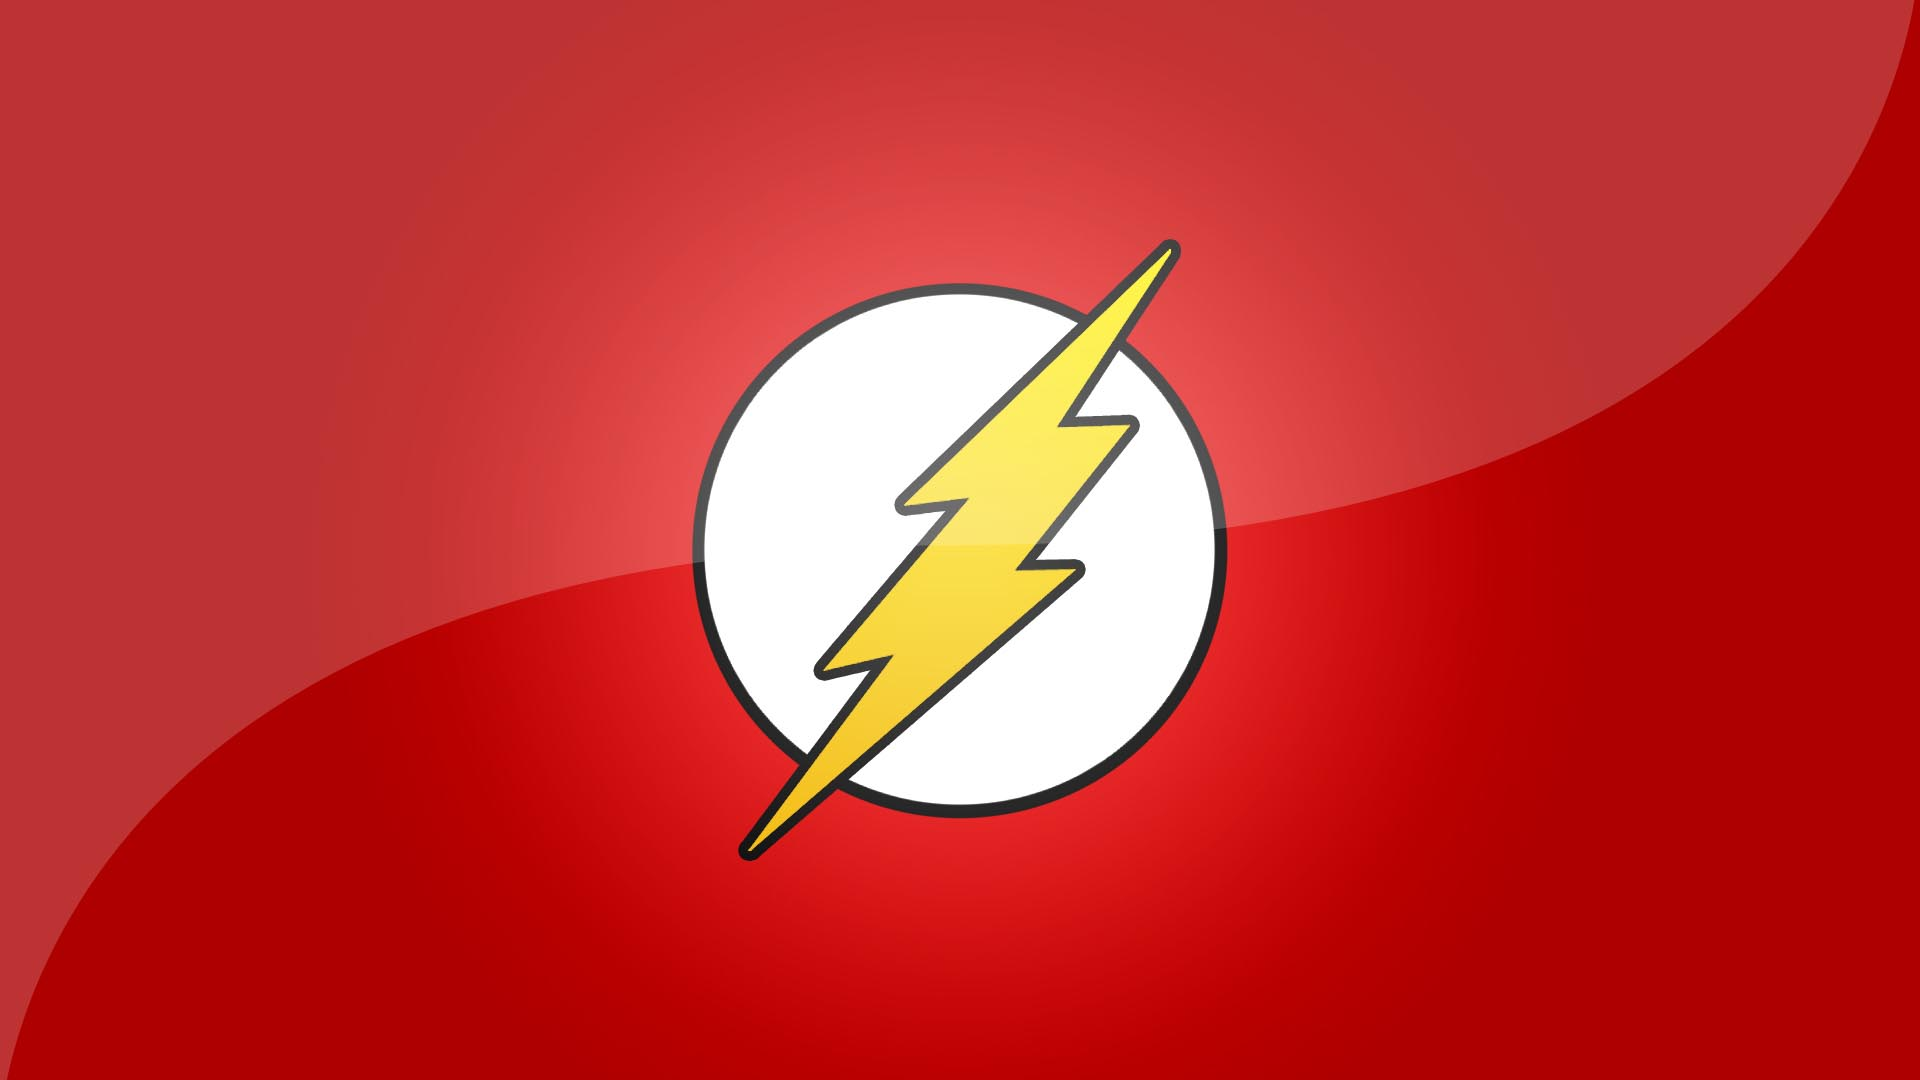 flash wallpaper | 1920x1080 | #59693